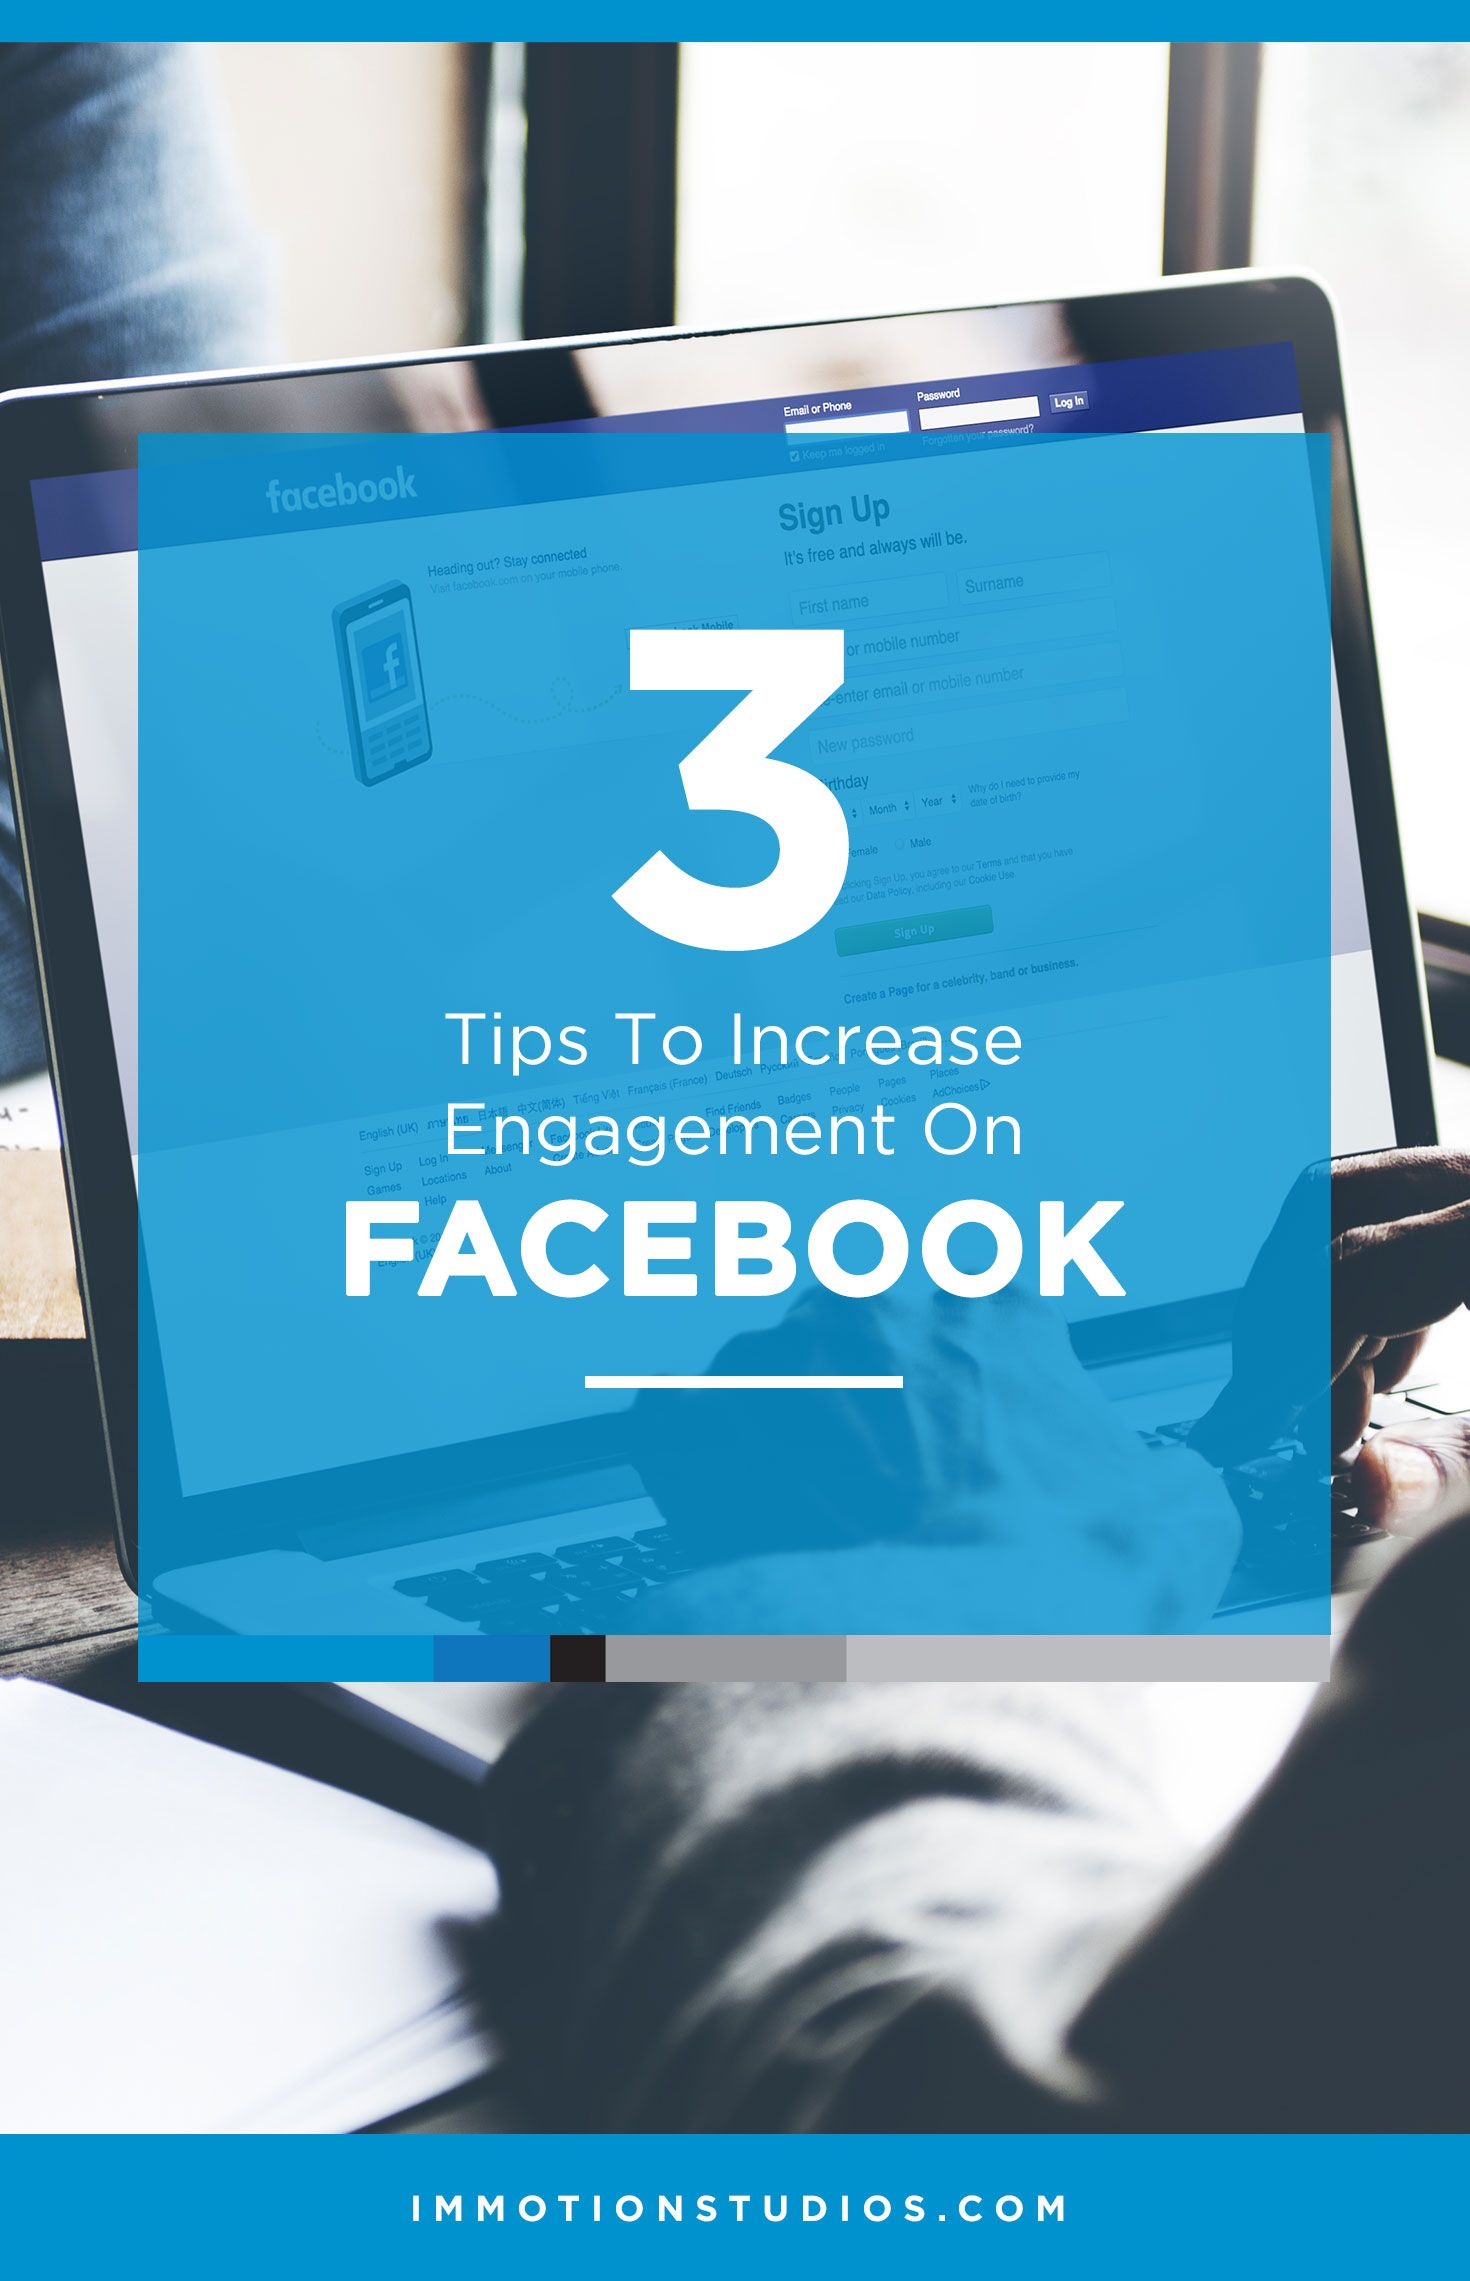 Increase your Facebook Engagement with these Tips | Immotion Studios